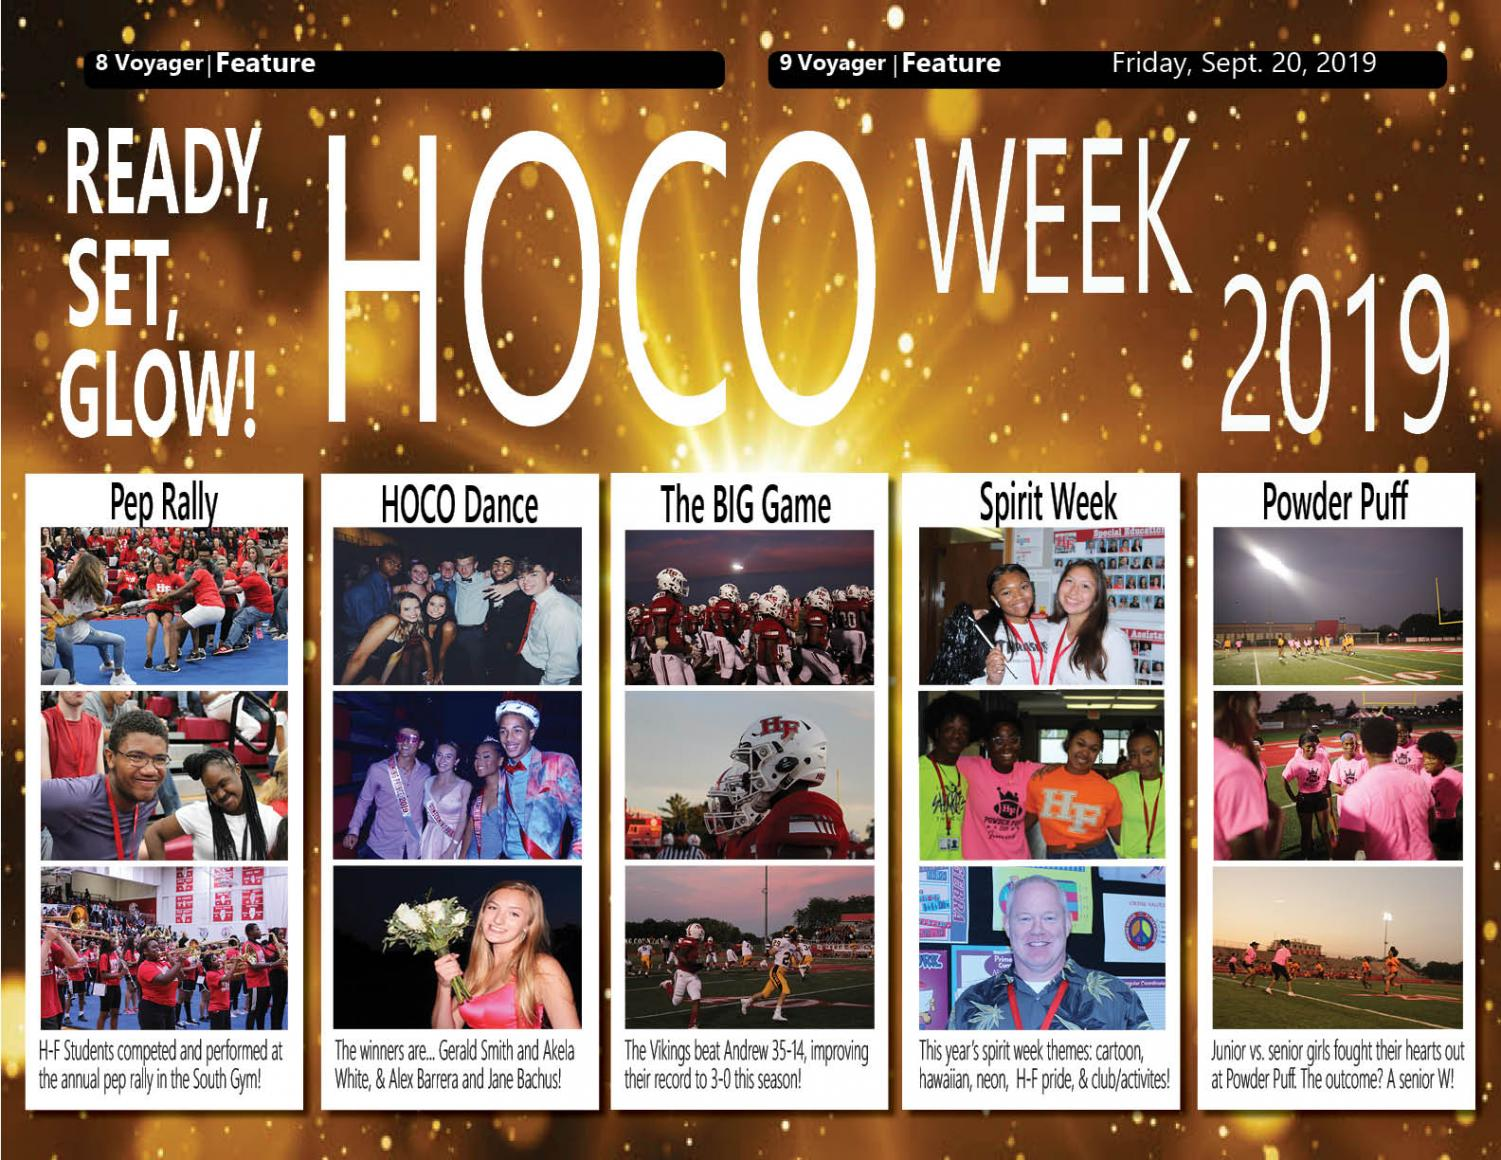 Ready%2C+Set%2C+Glow%21+Here%27s+a+quick+look+into+H-F%27s+Homecoming+Week+2019.